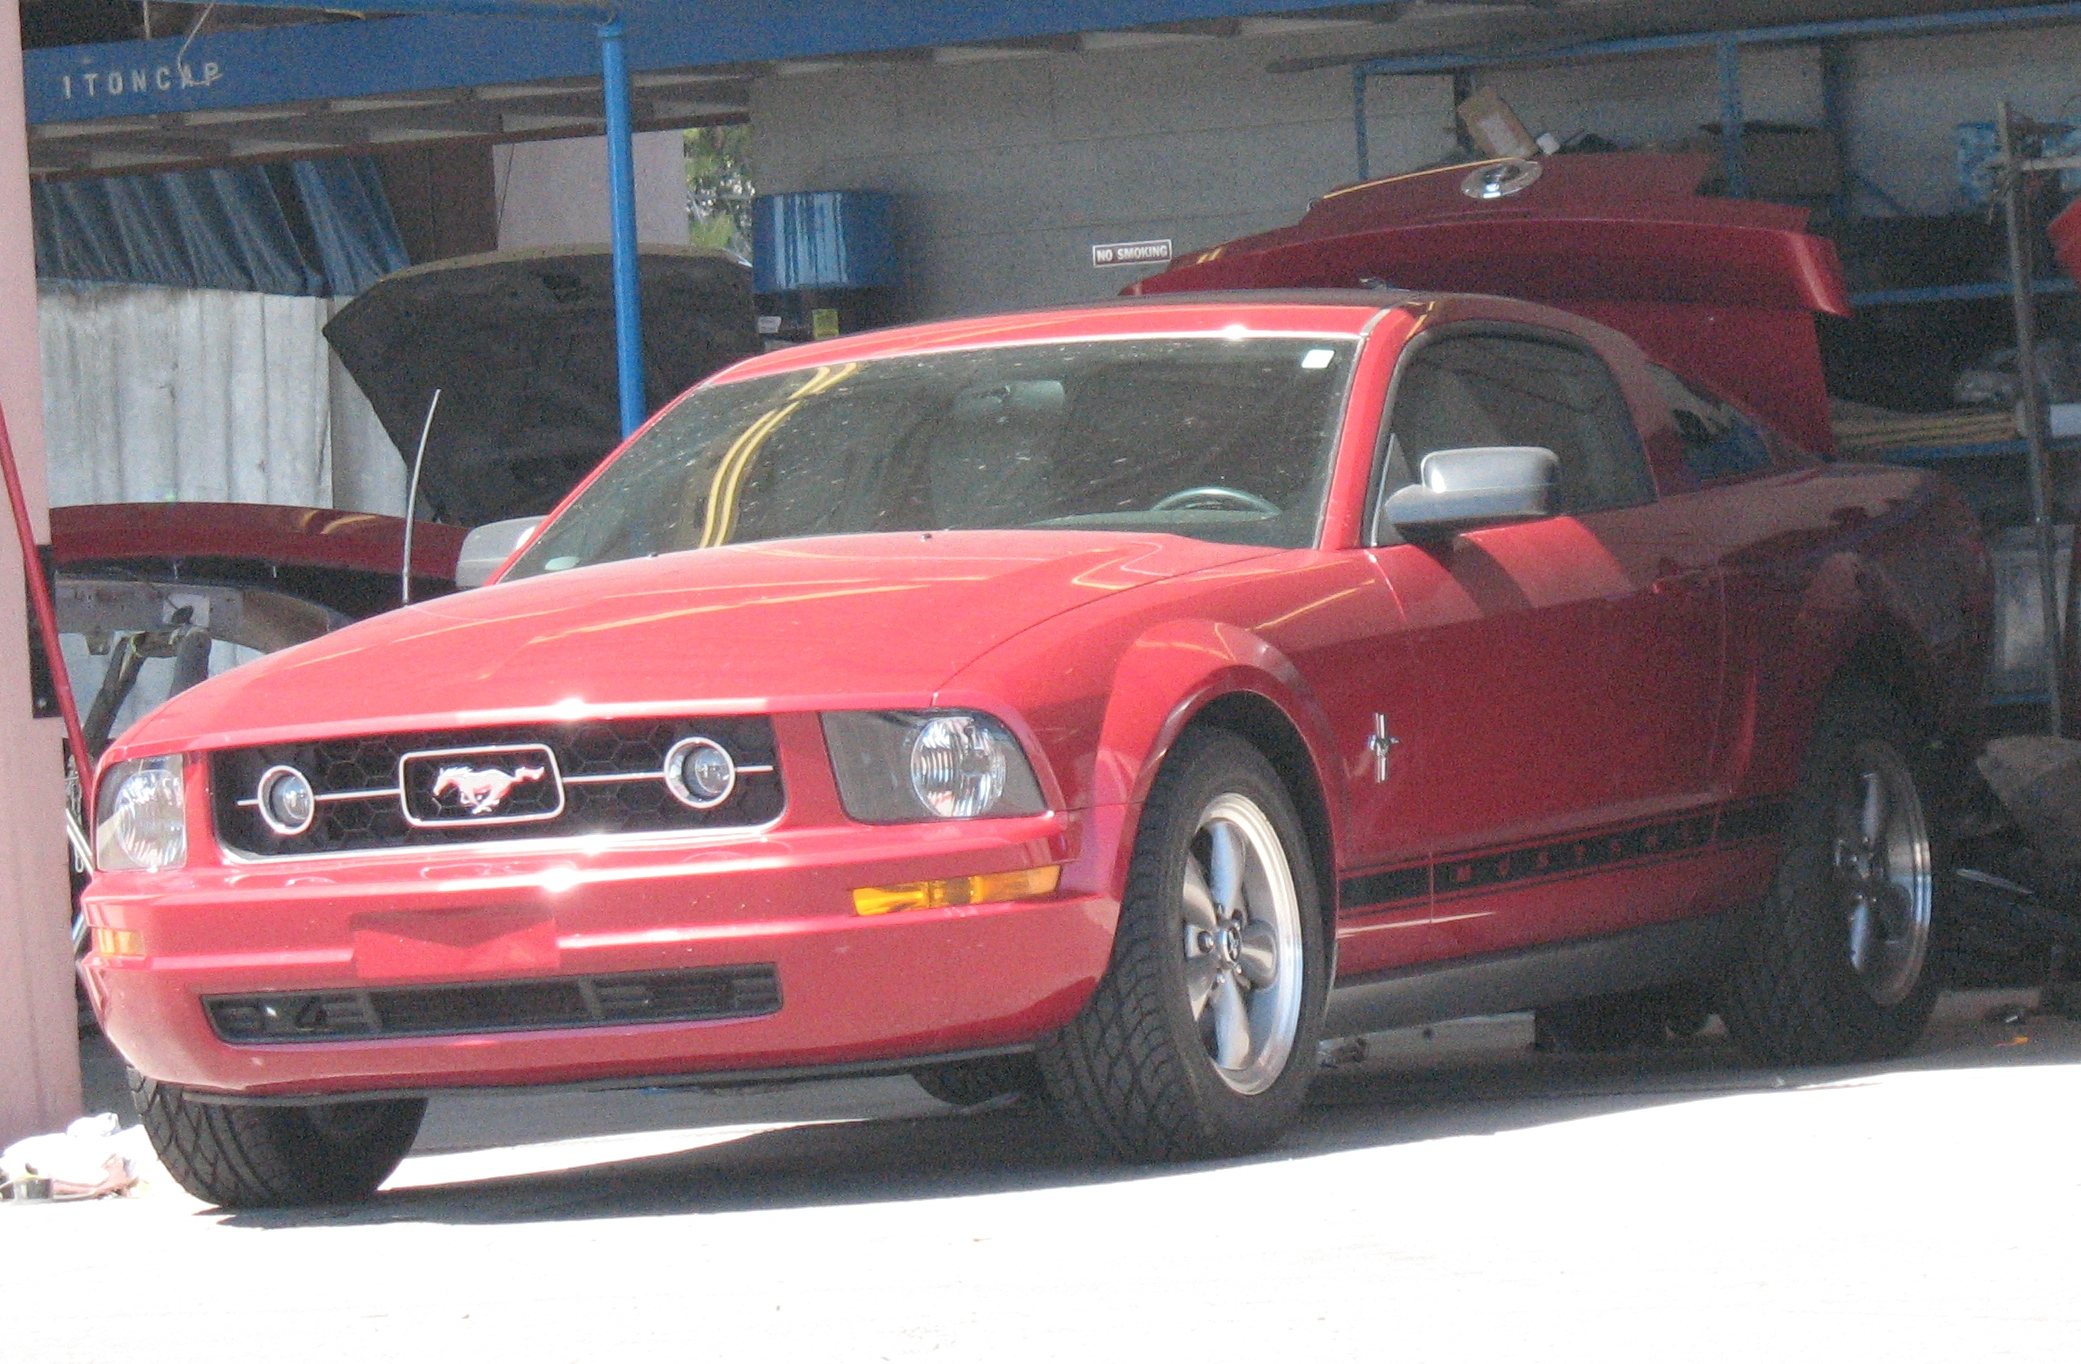 2006 Ford Mustang body shop